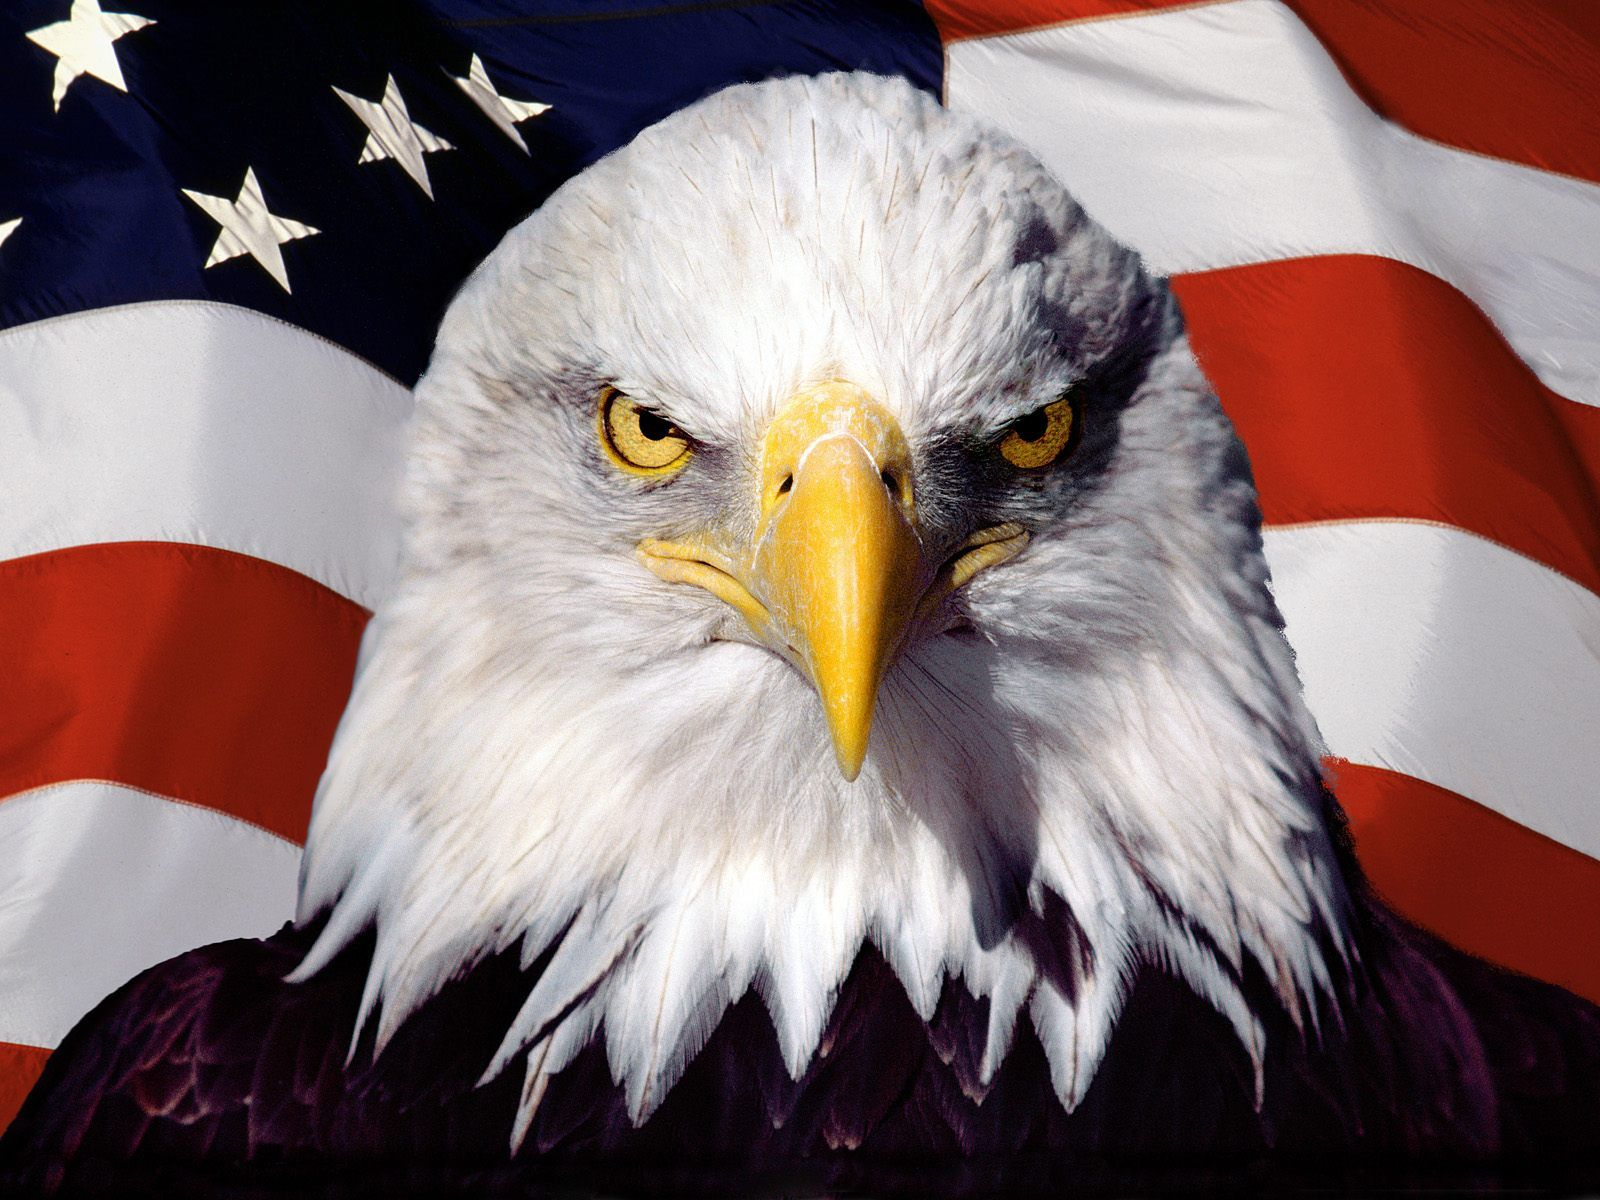 American flag with bald eagle overlay